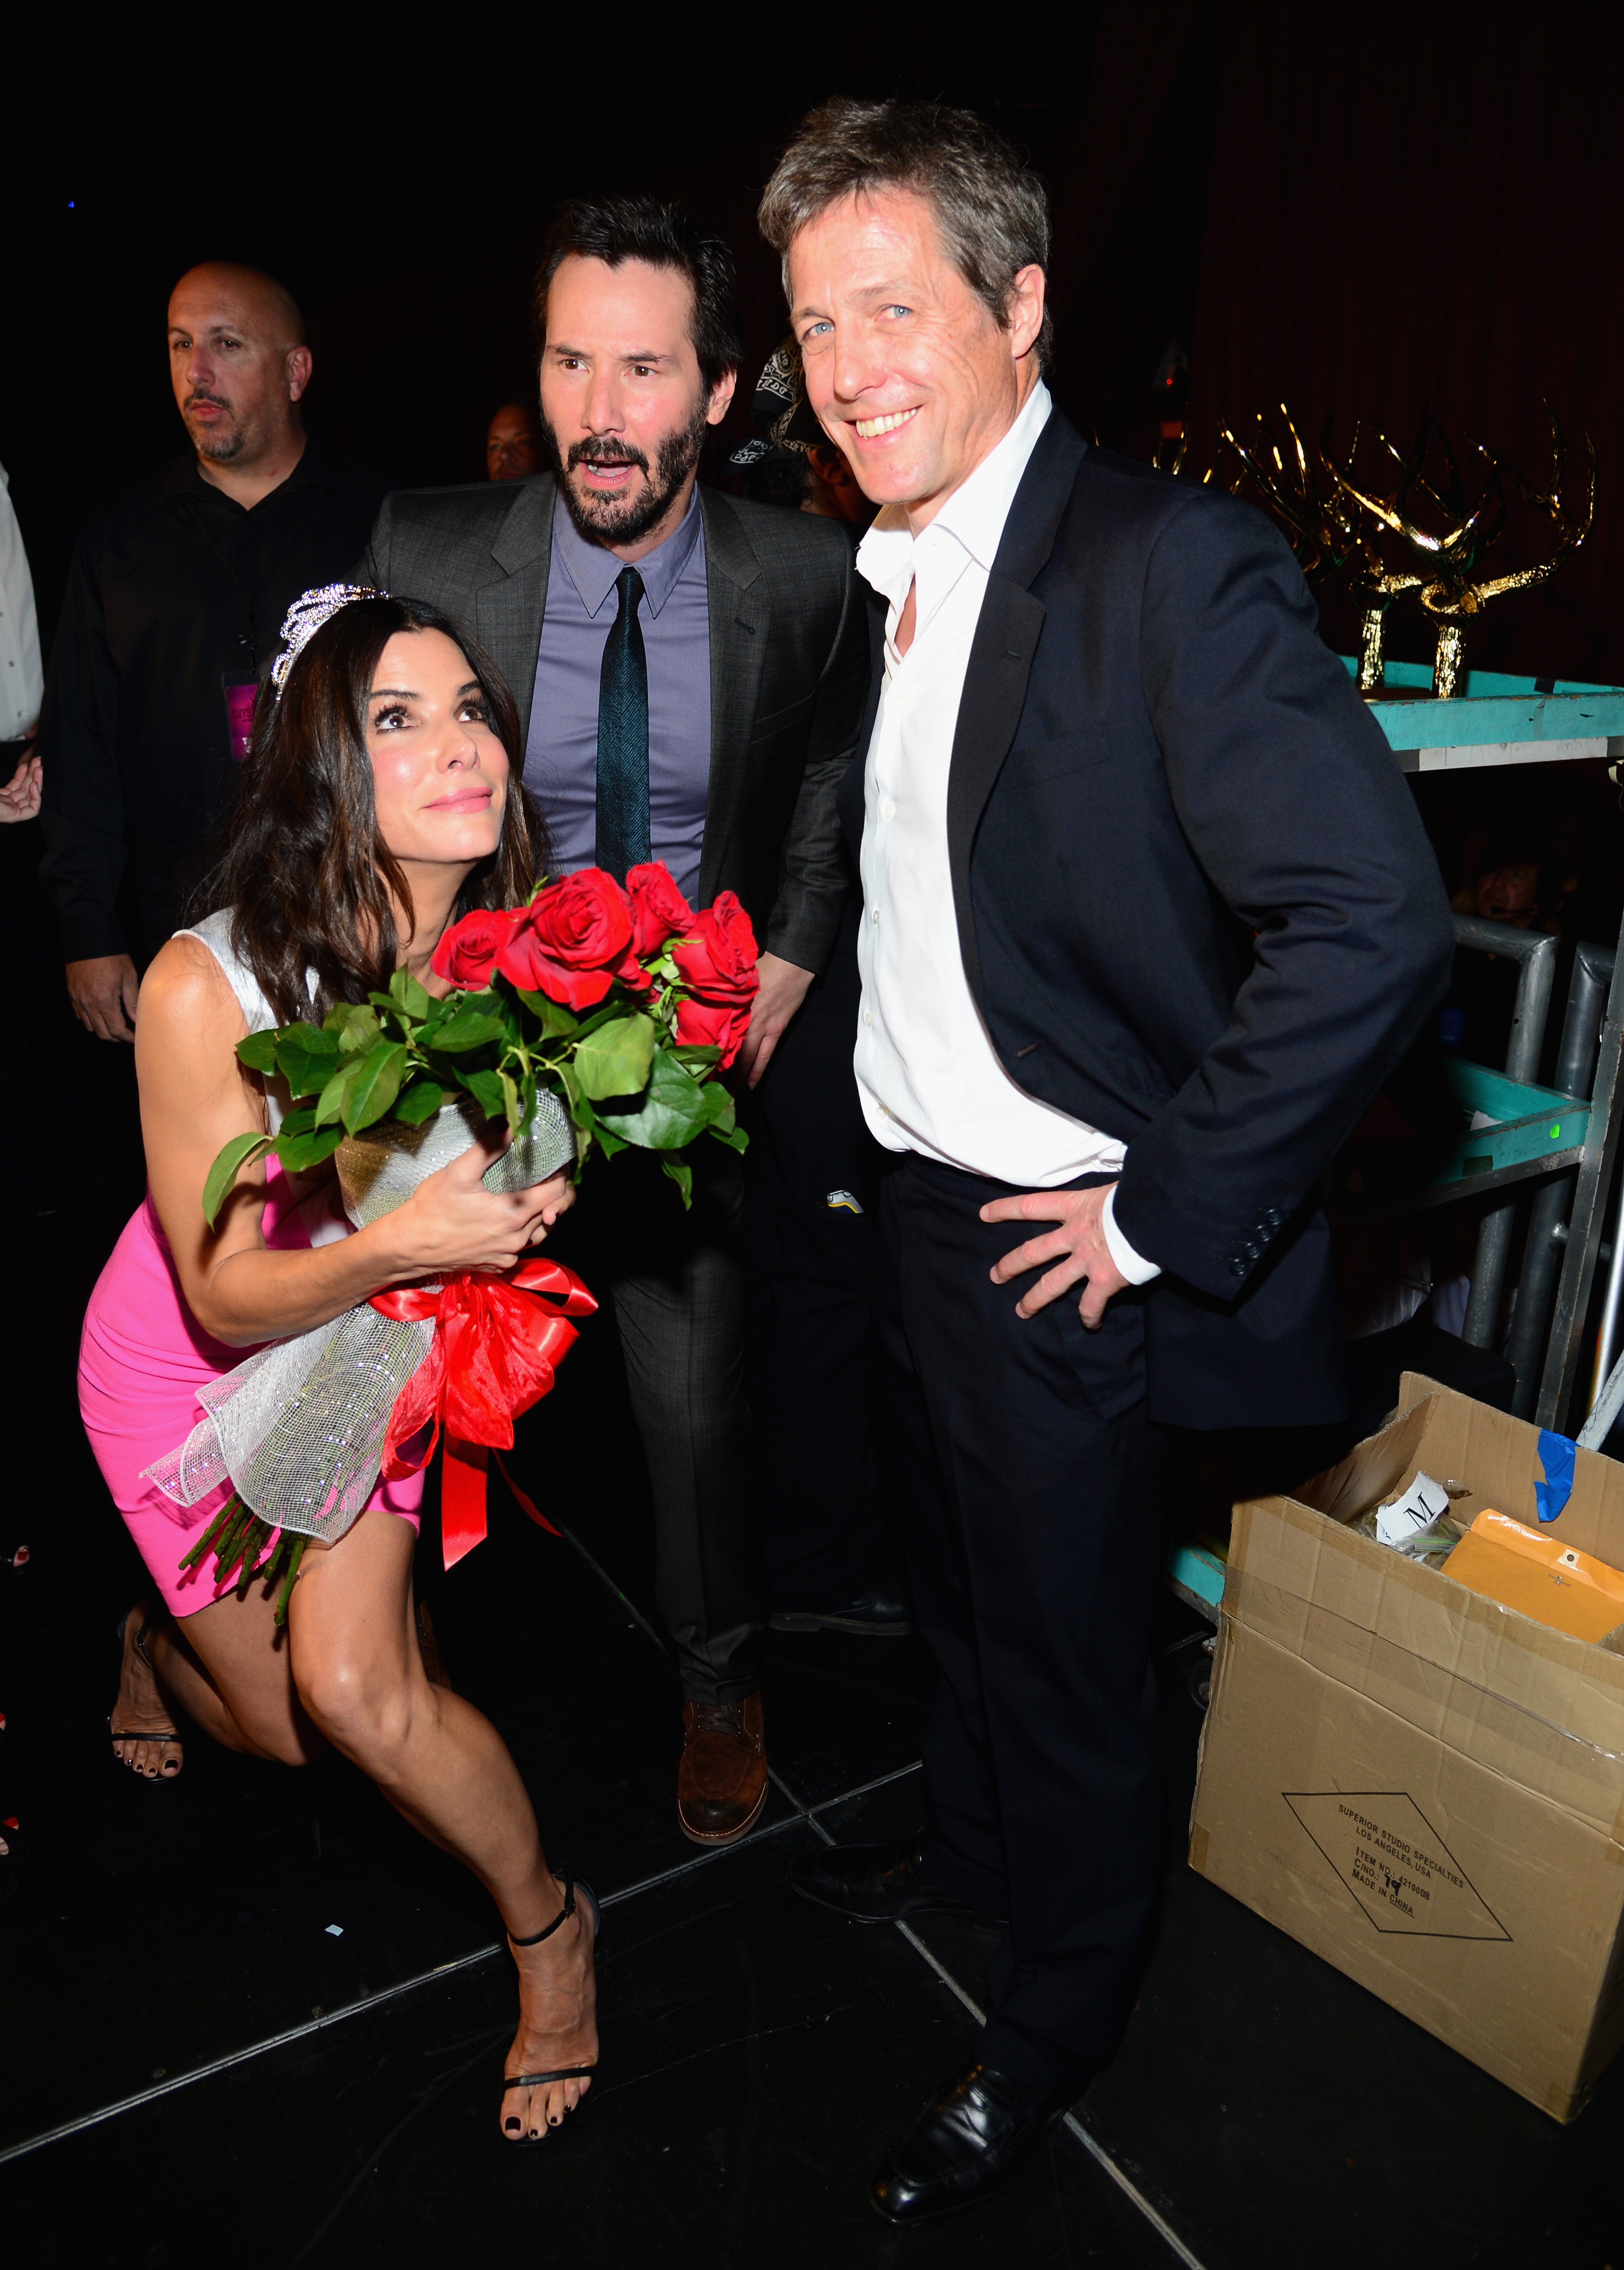 Actors Sandra Bullock, Keanu Reeves and Hugh Grant attend Spike TV's 'Guys Choice 2014' at Sony Pictures Studios on June 7, 2014, in Culver City, California. (Getty Images)